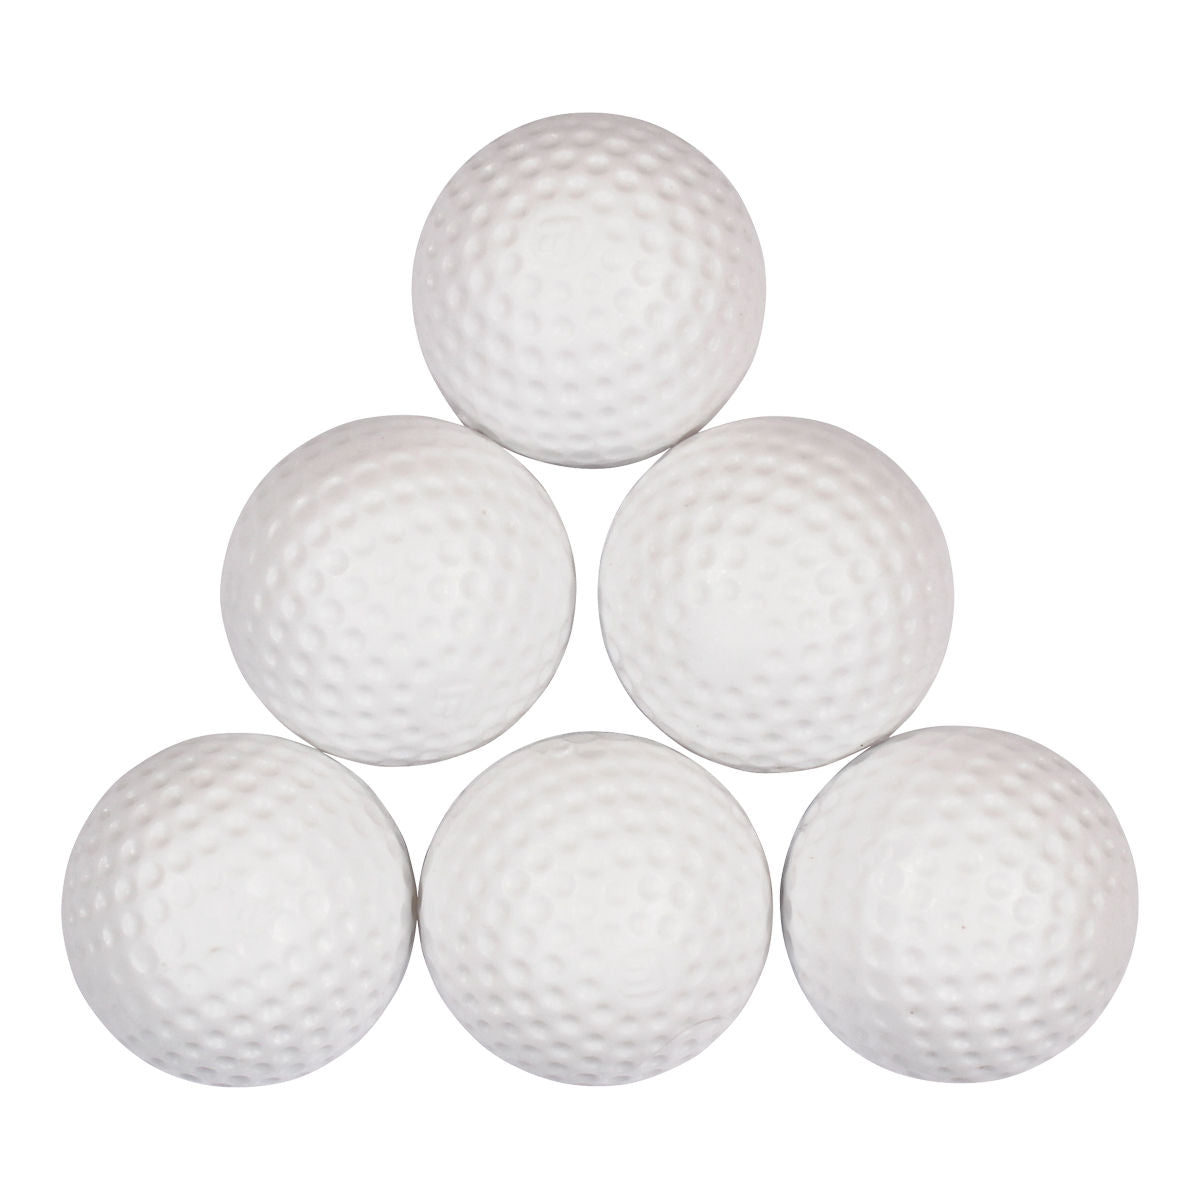 30% Distance Golf Balls pack of 6 - Putterfingers.com